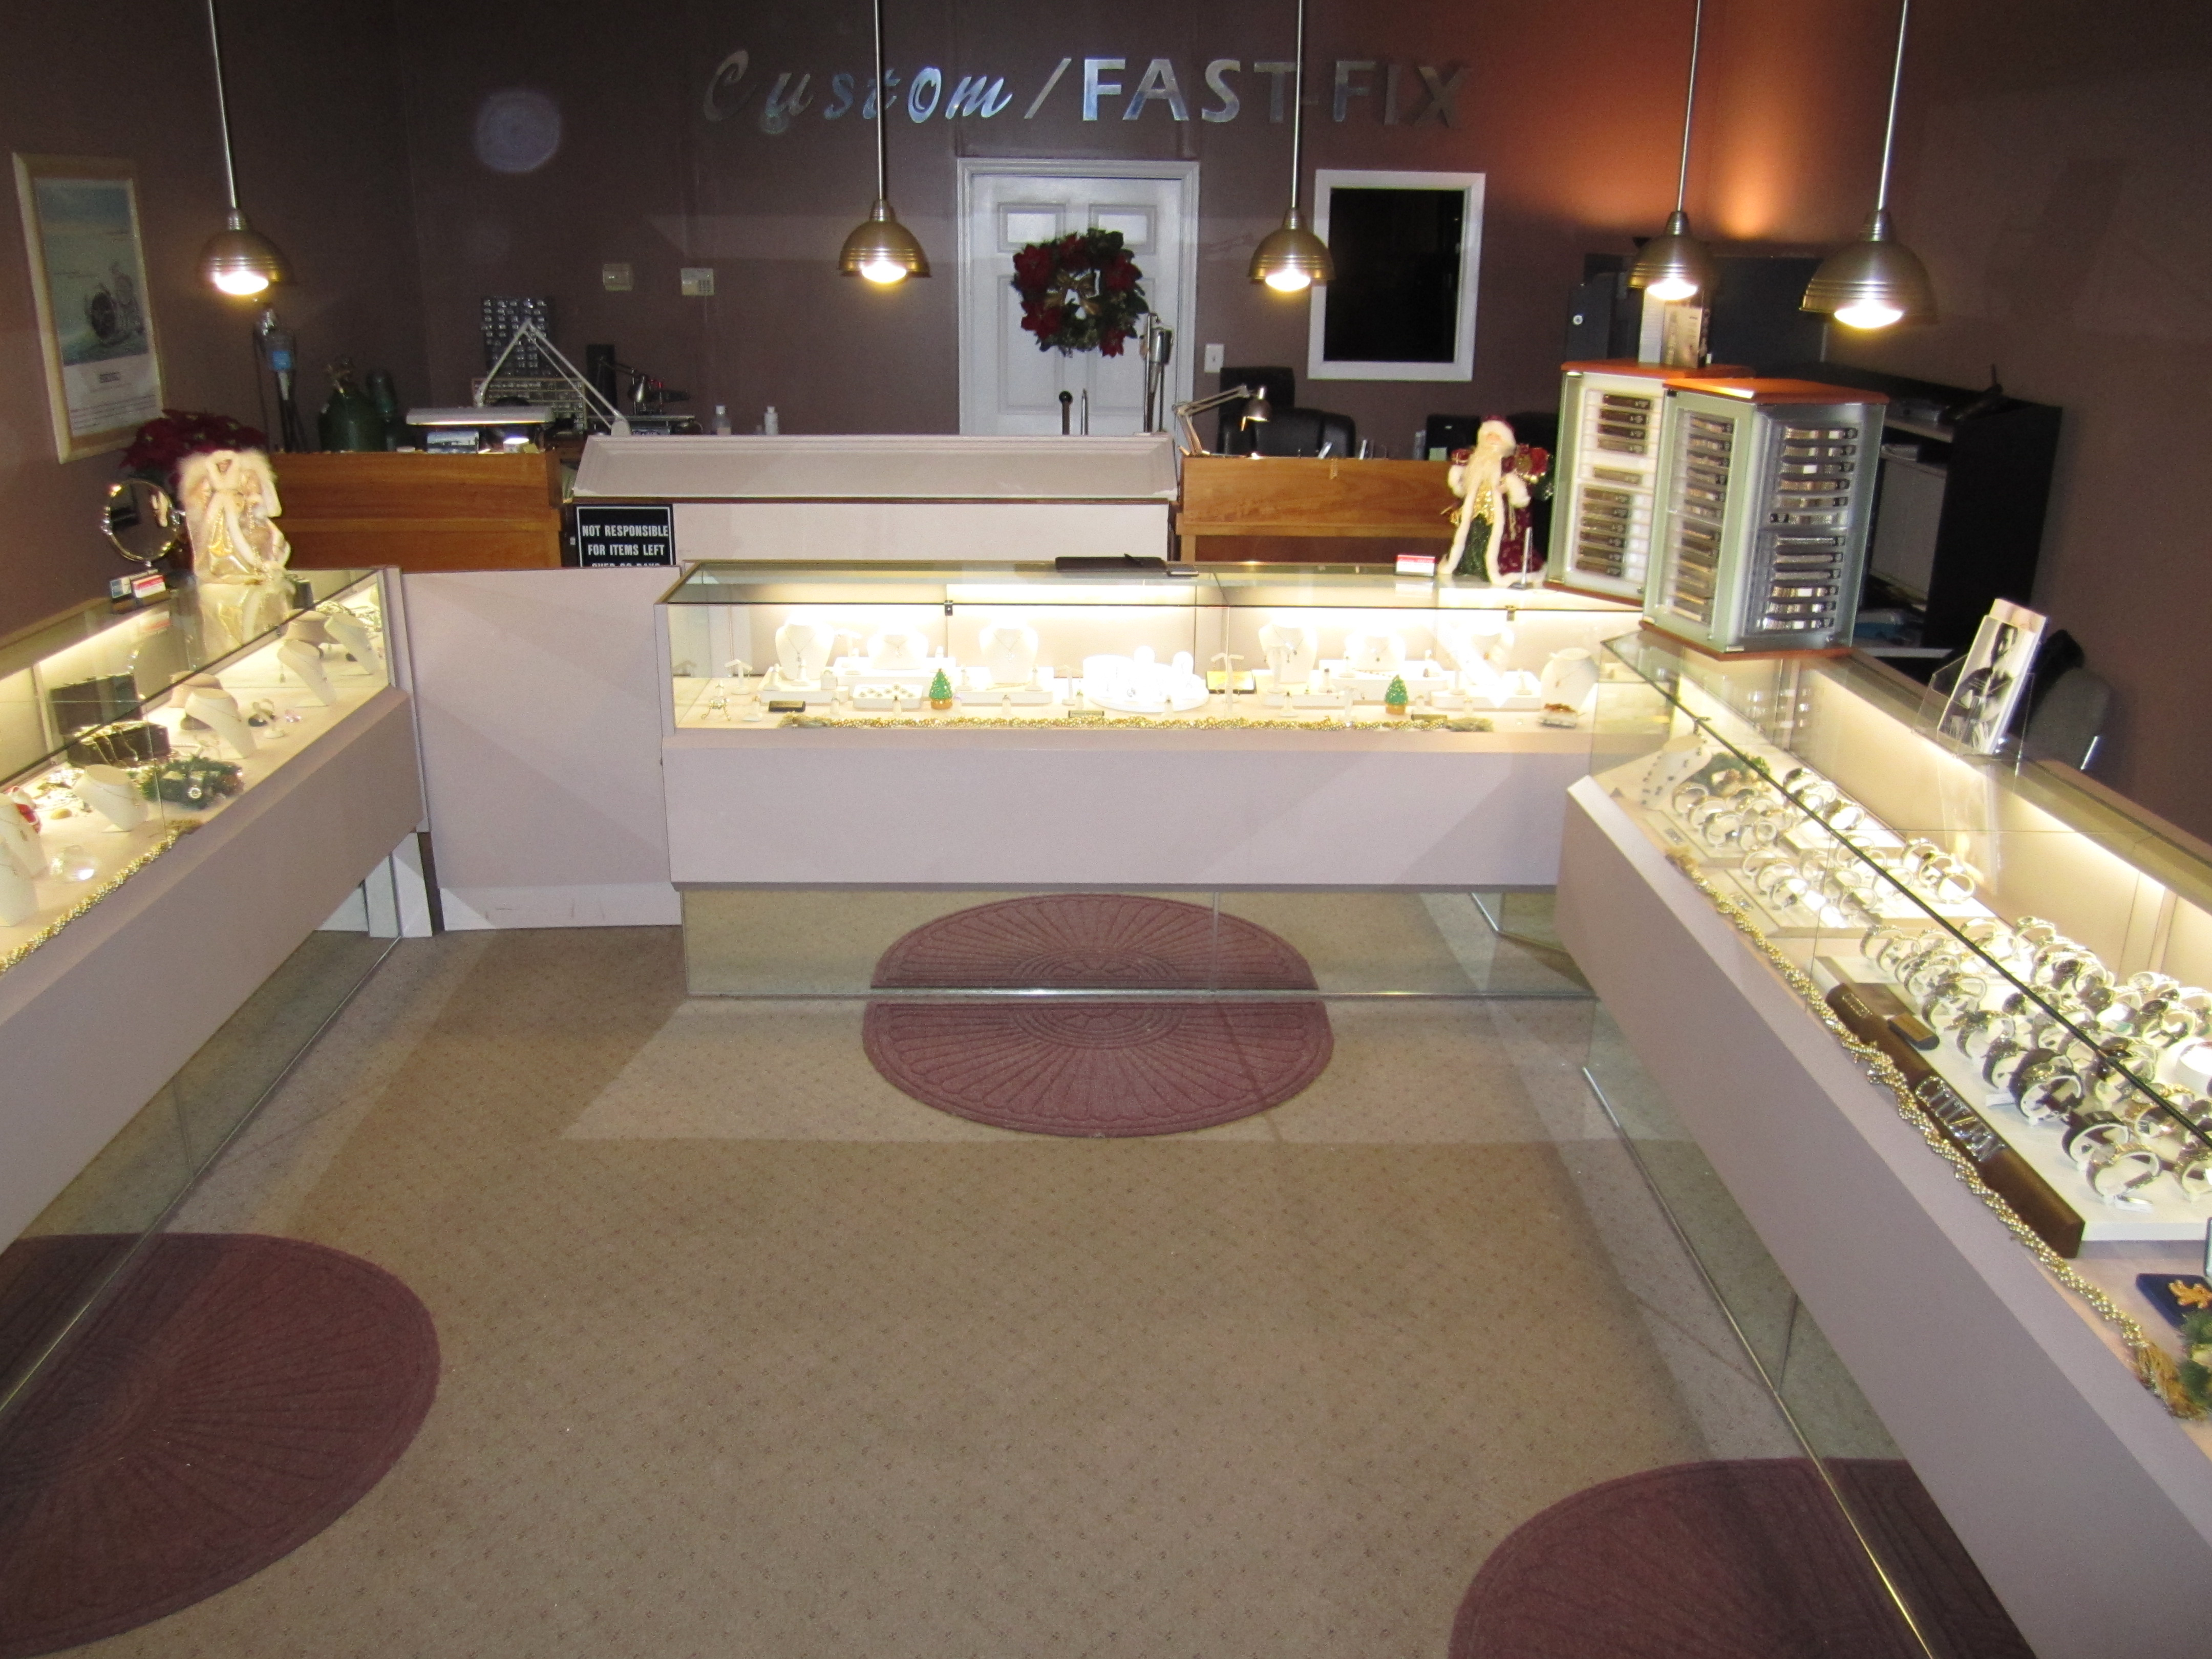 welcome to custom fast fix jewelry repair